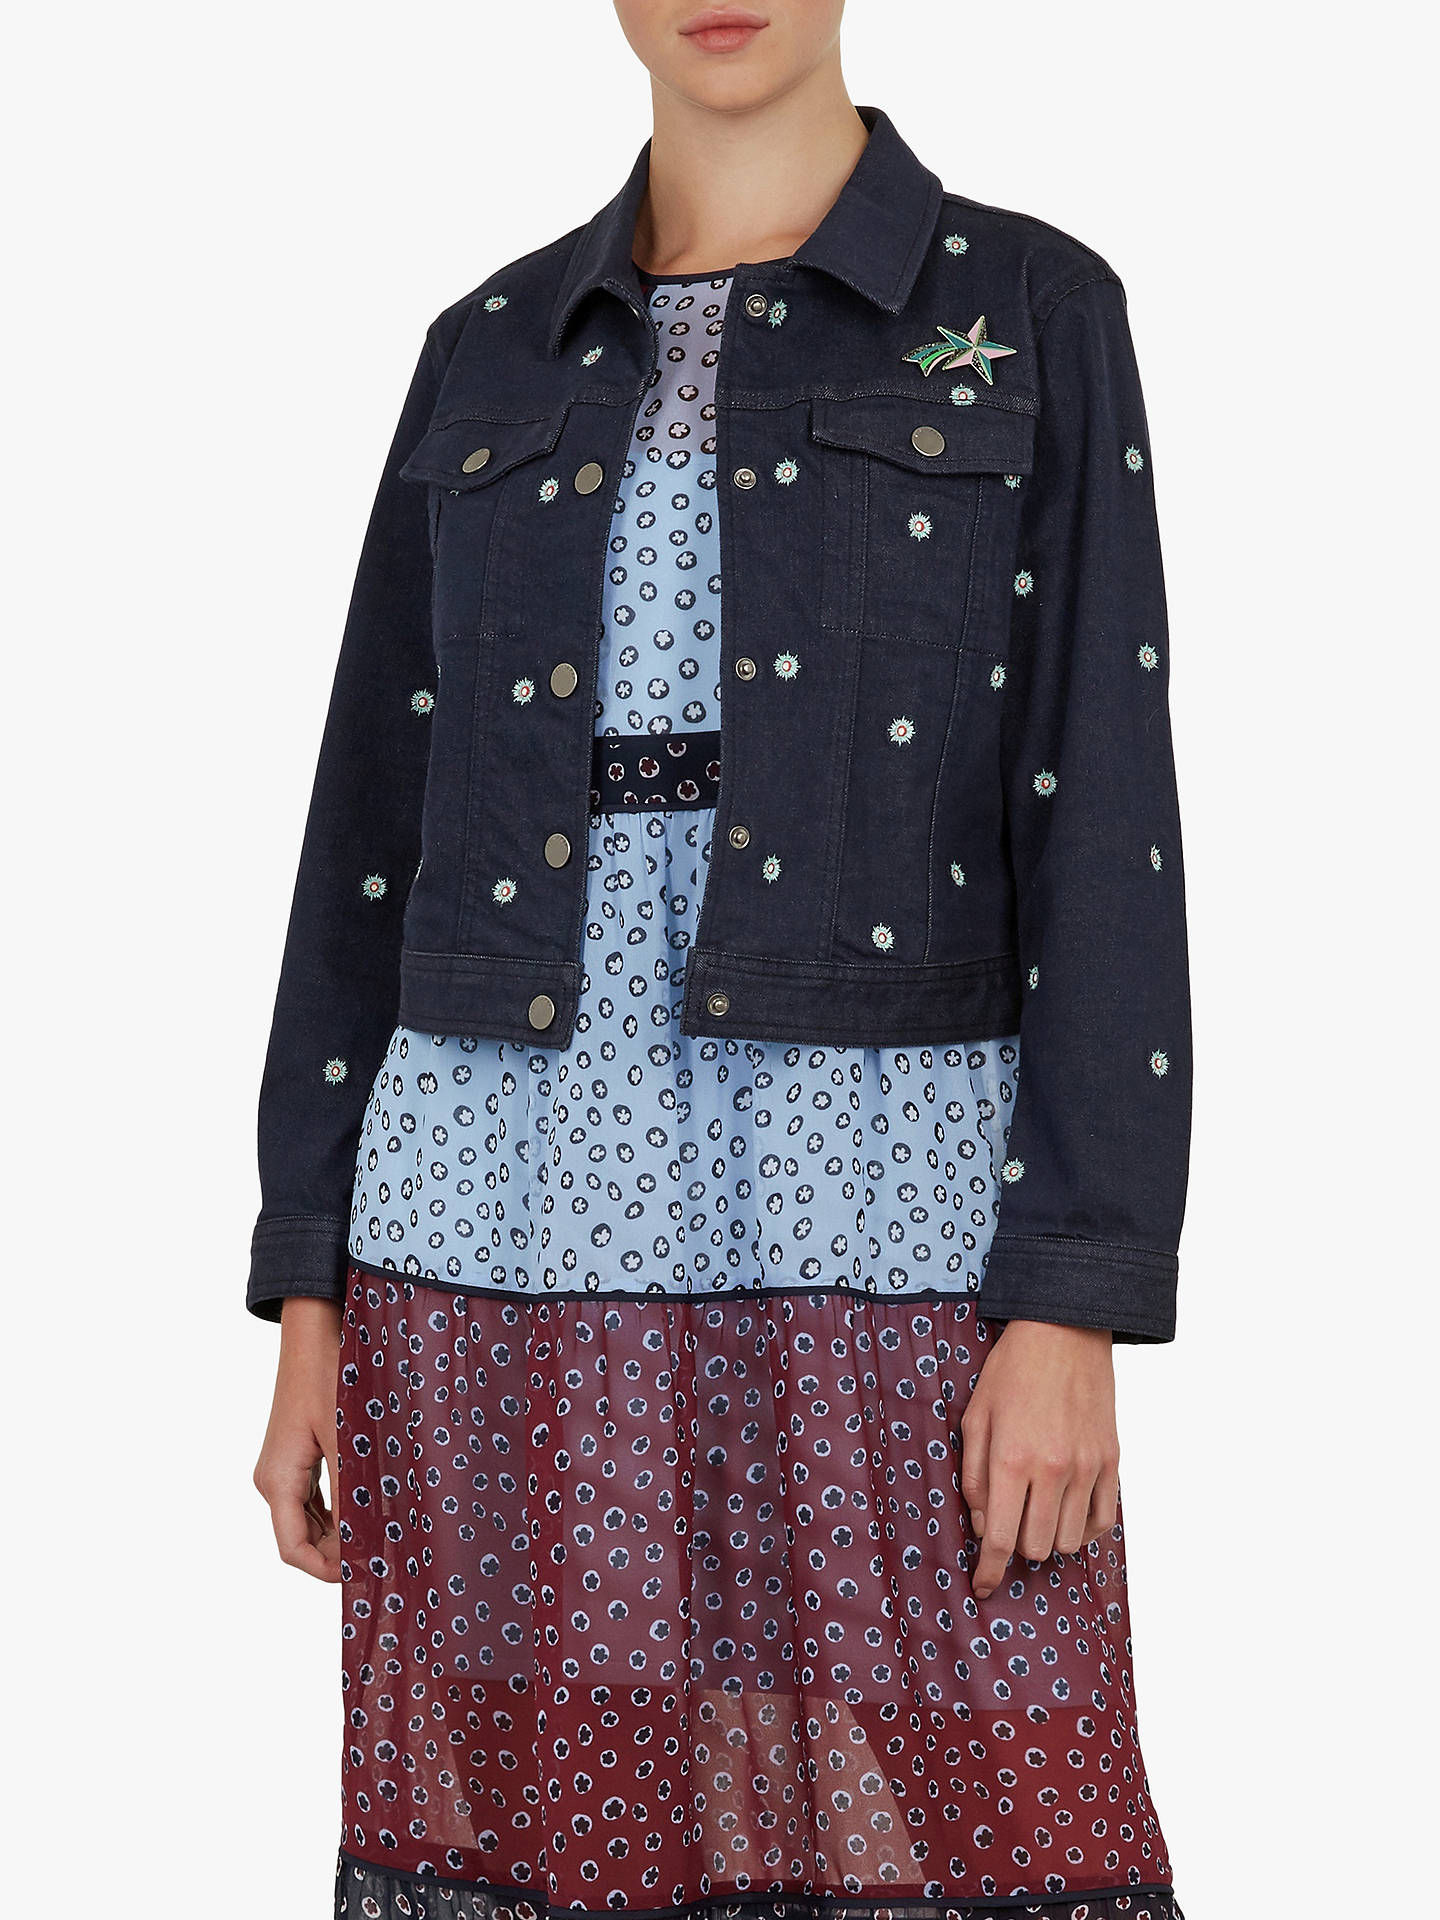 women's Ted Baker denim jacket in